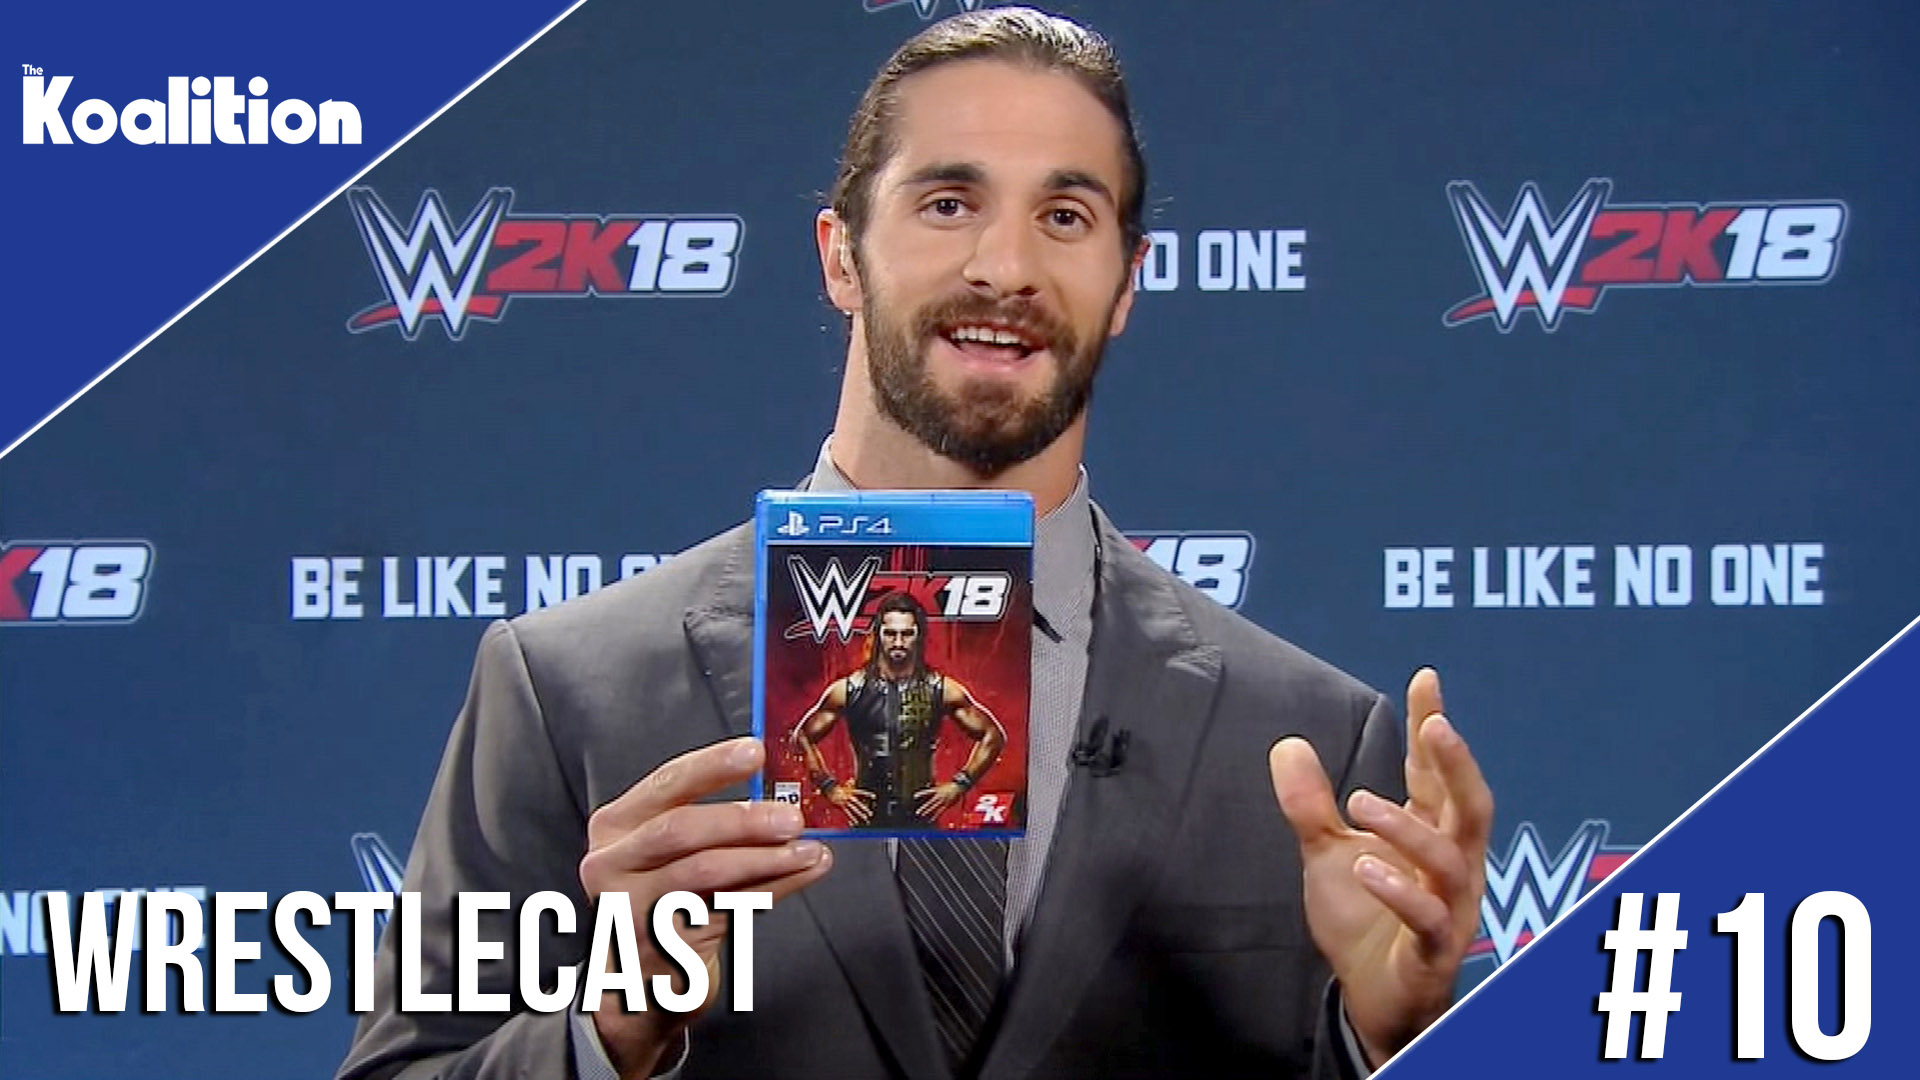 WrestleCast Ep 10 Should We Be Worried About WWE 2K18 The Koalition